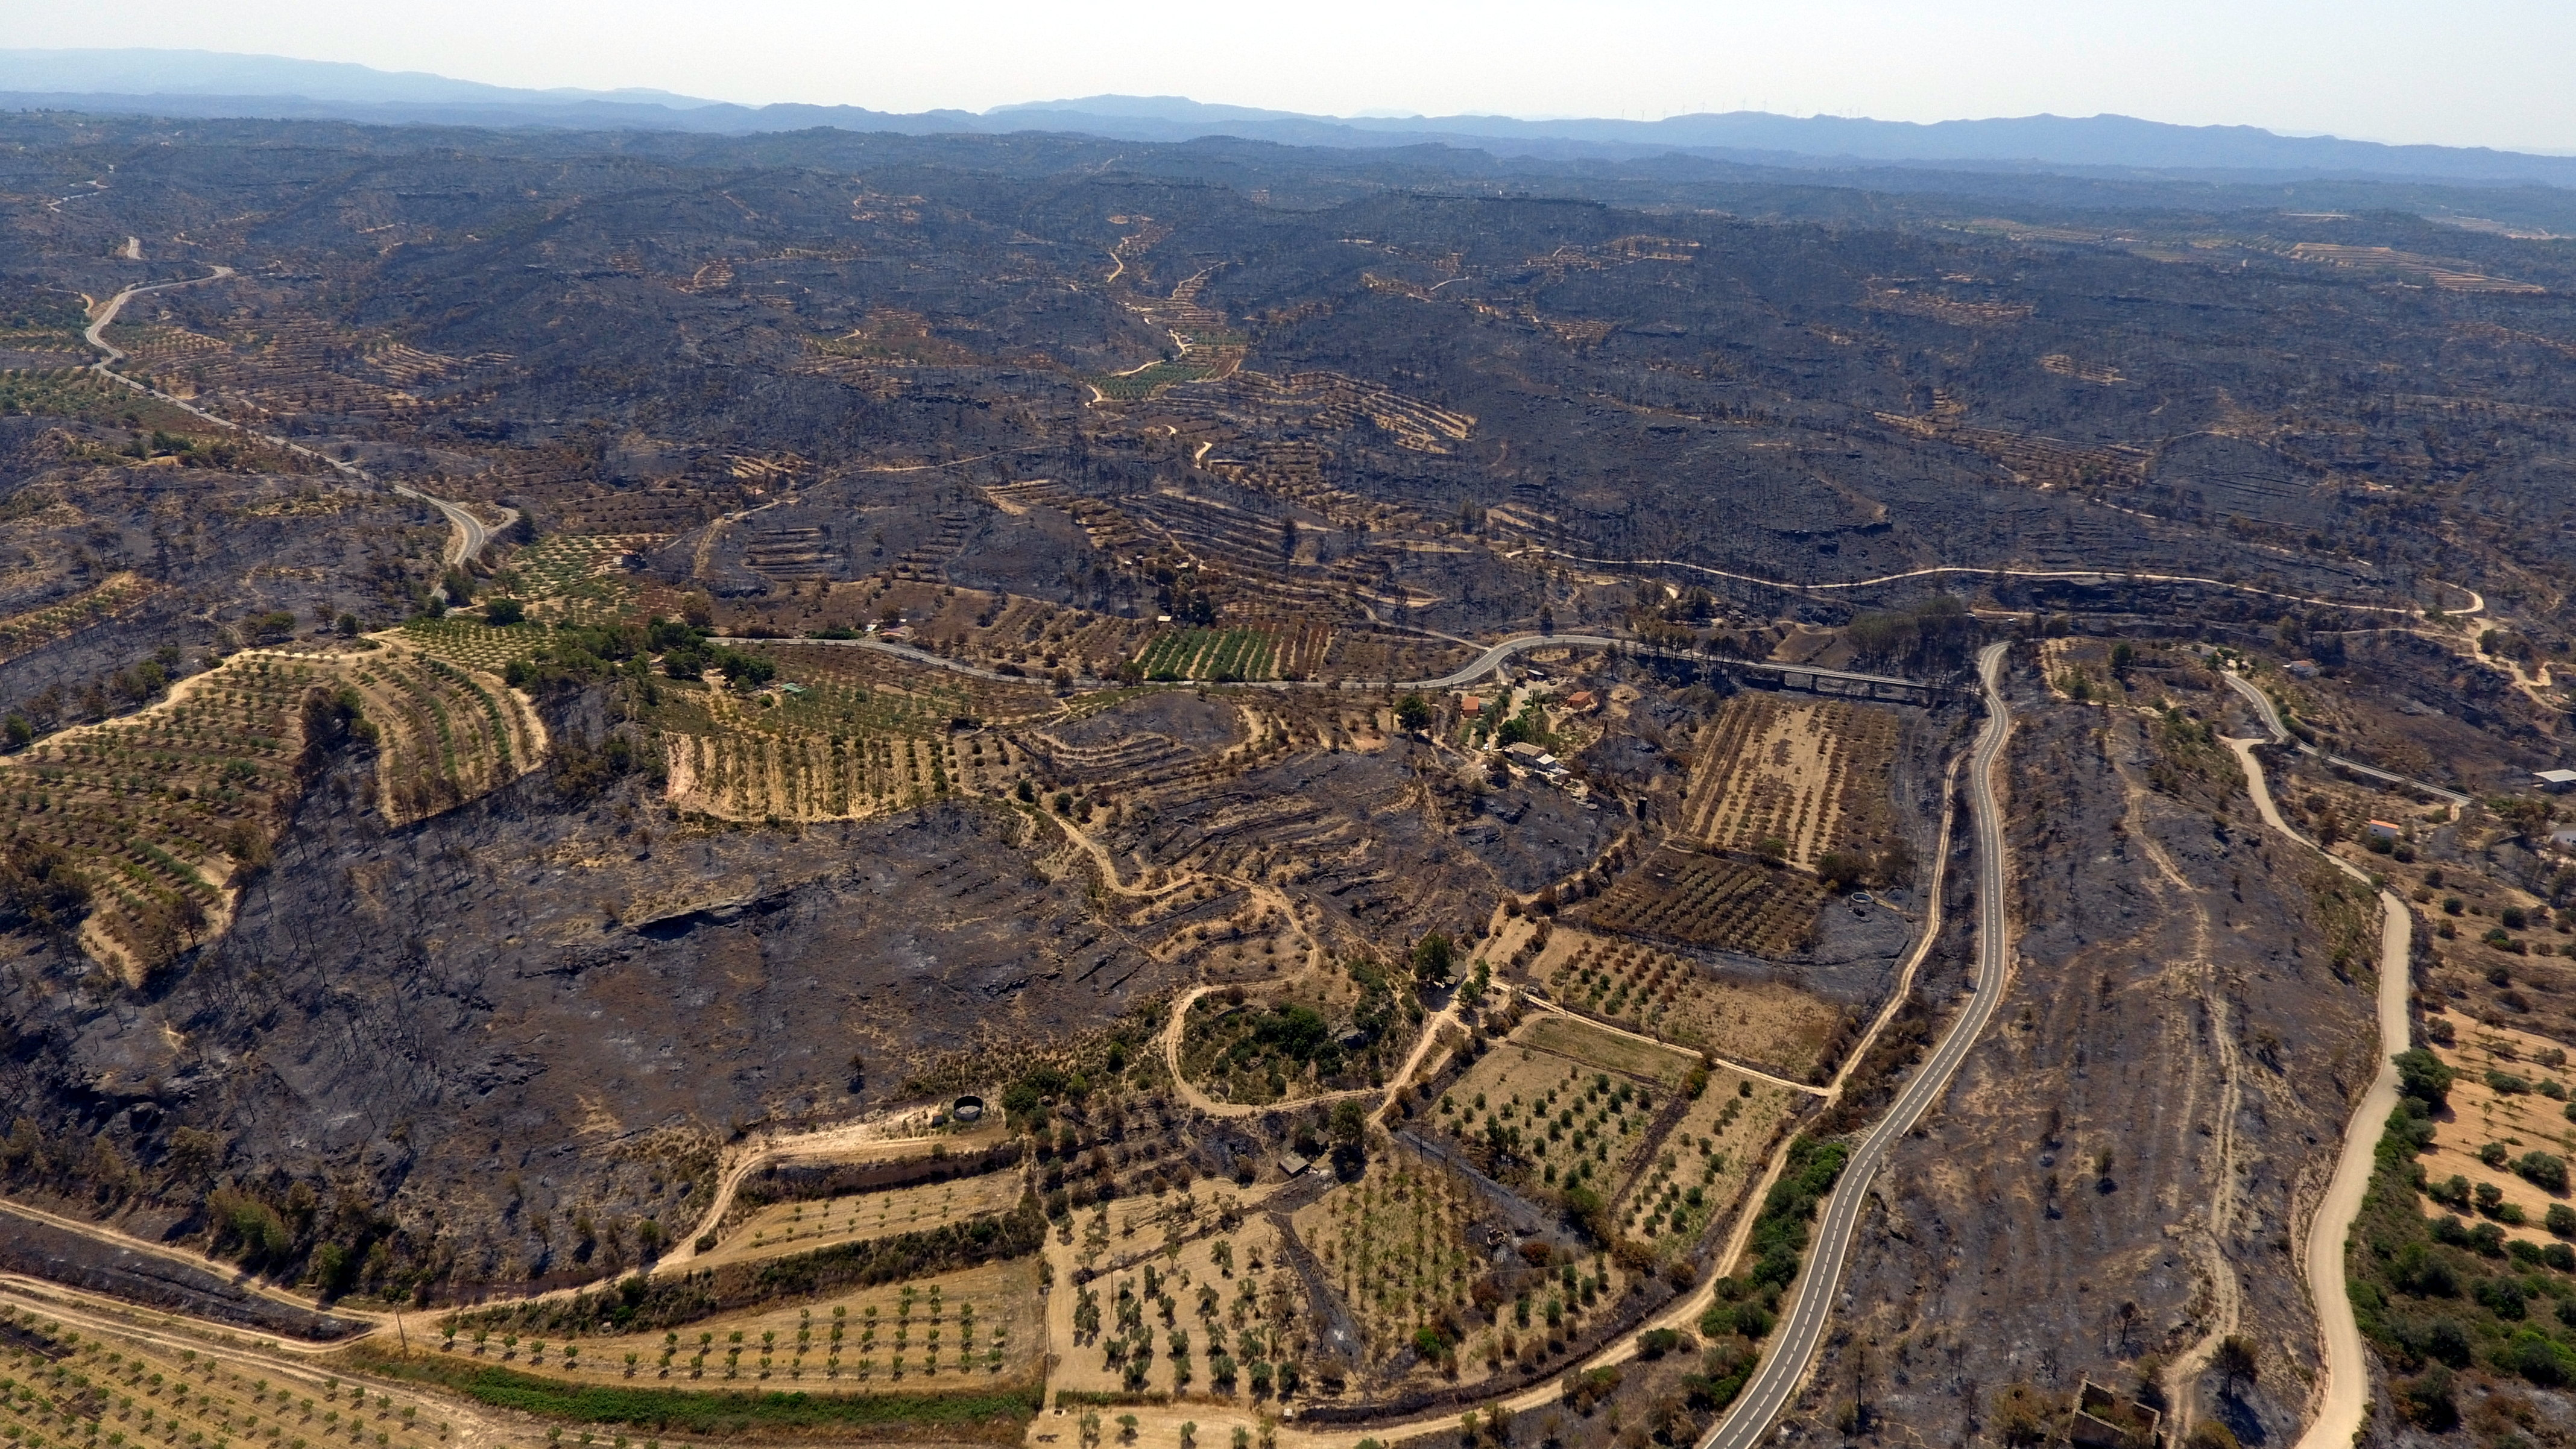 A wildfire in western Catalonia burns down over 5,000 hectares (by ACN)